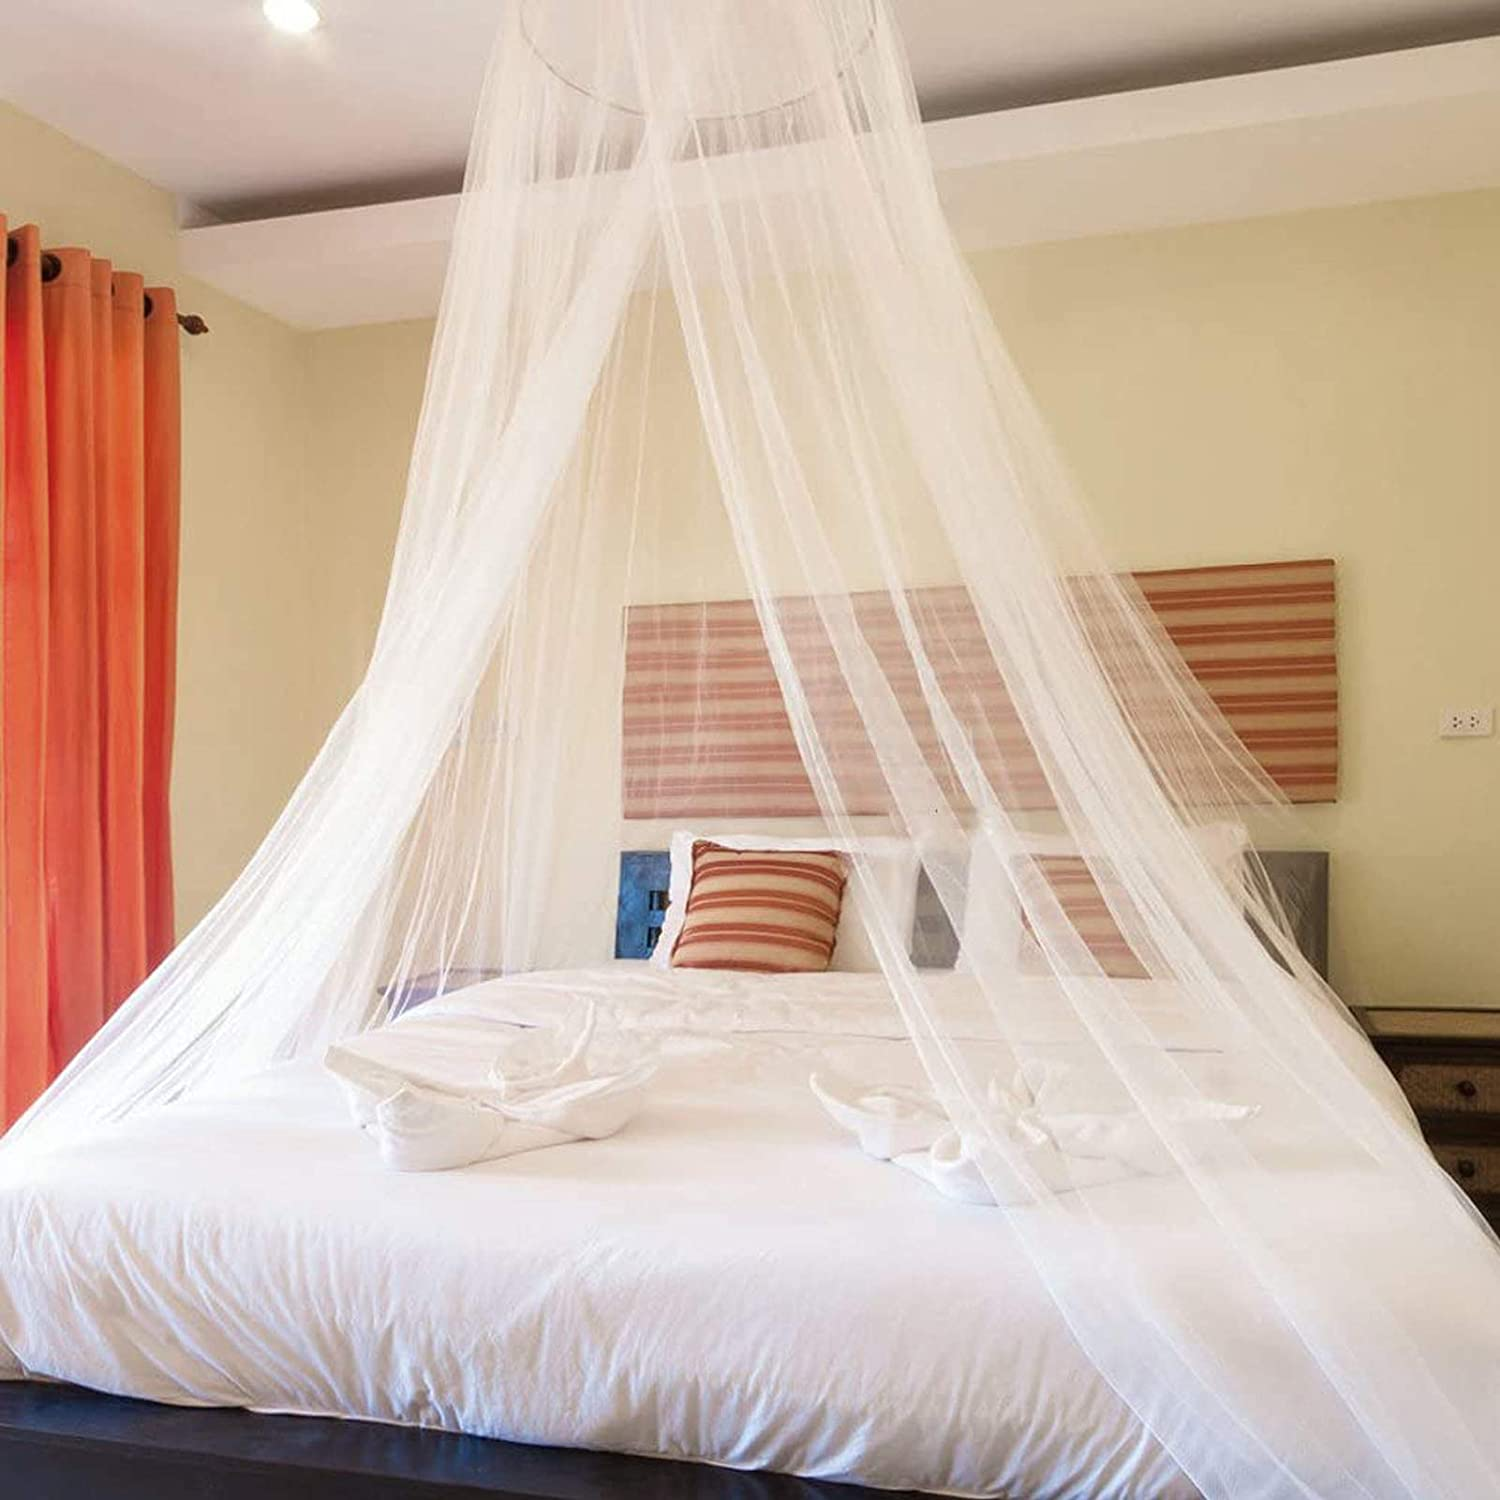 Mosquito Net, Bed Canopy Hanging Circular Curtain Netting for Single to King Size, Quick Easy Installation, Use to Cover The Baby Crib, Kid Bed, Girls Bed Or Full Size Bed